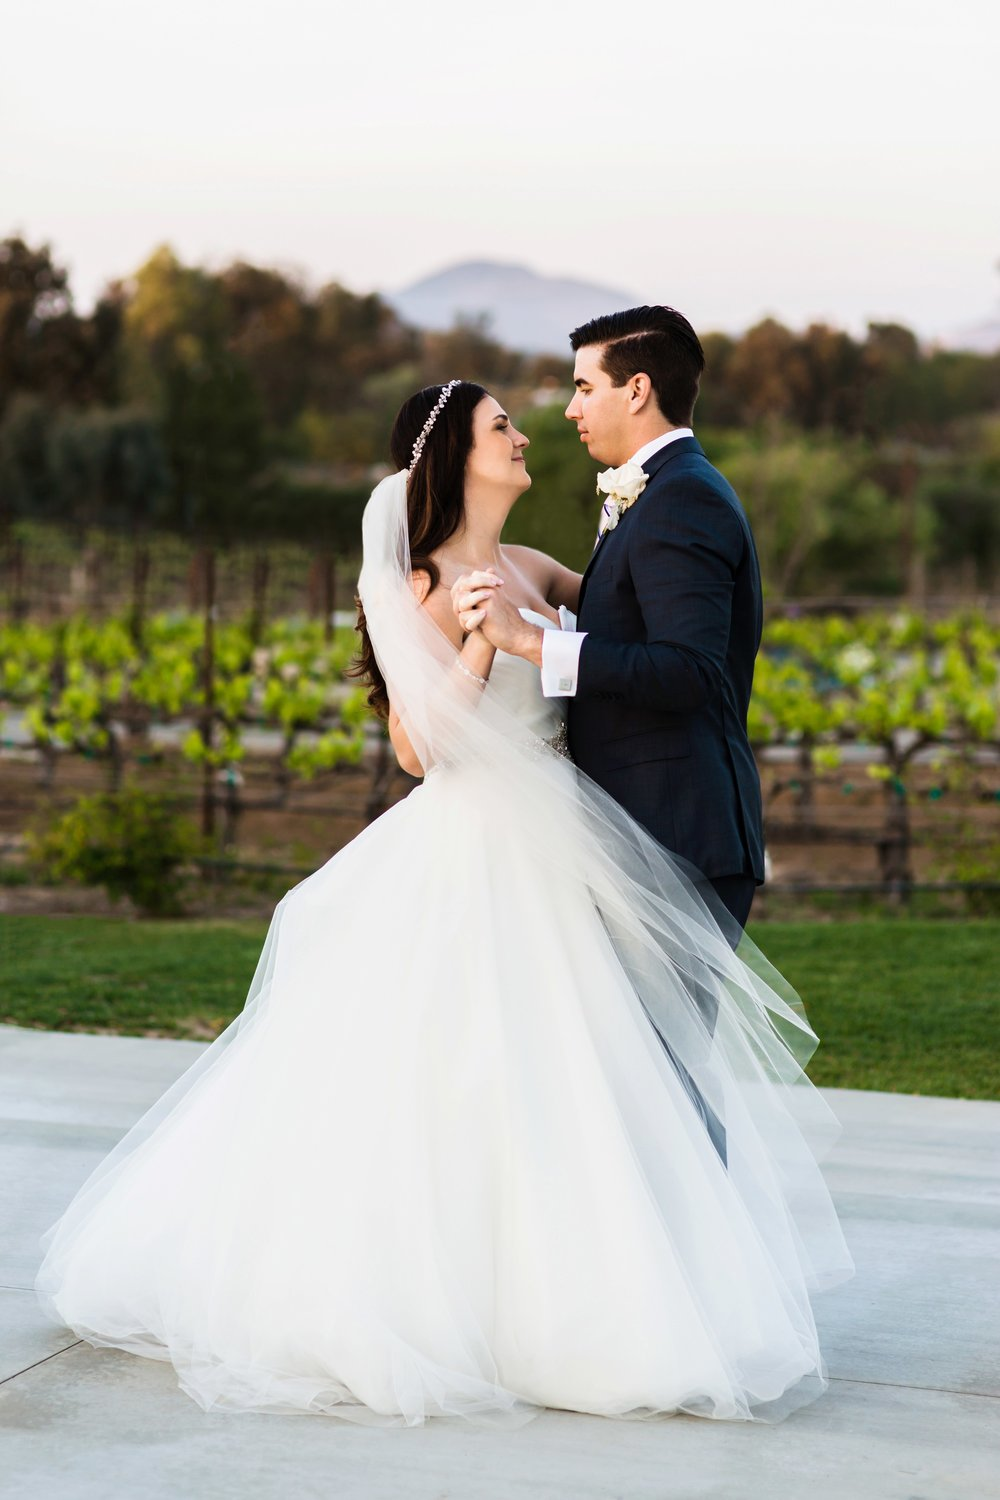 Temecula Wedding Photographer - Lorimar Winery - Jill and Darren-22.jpg